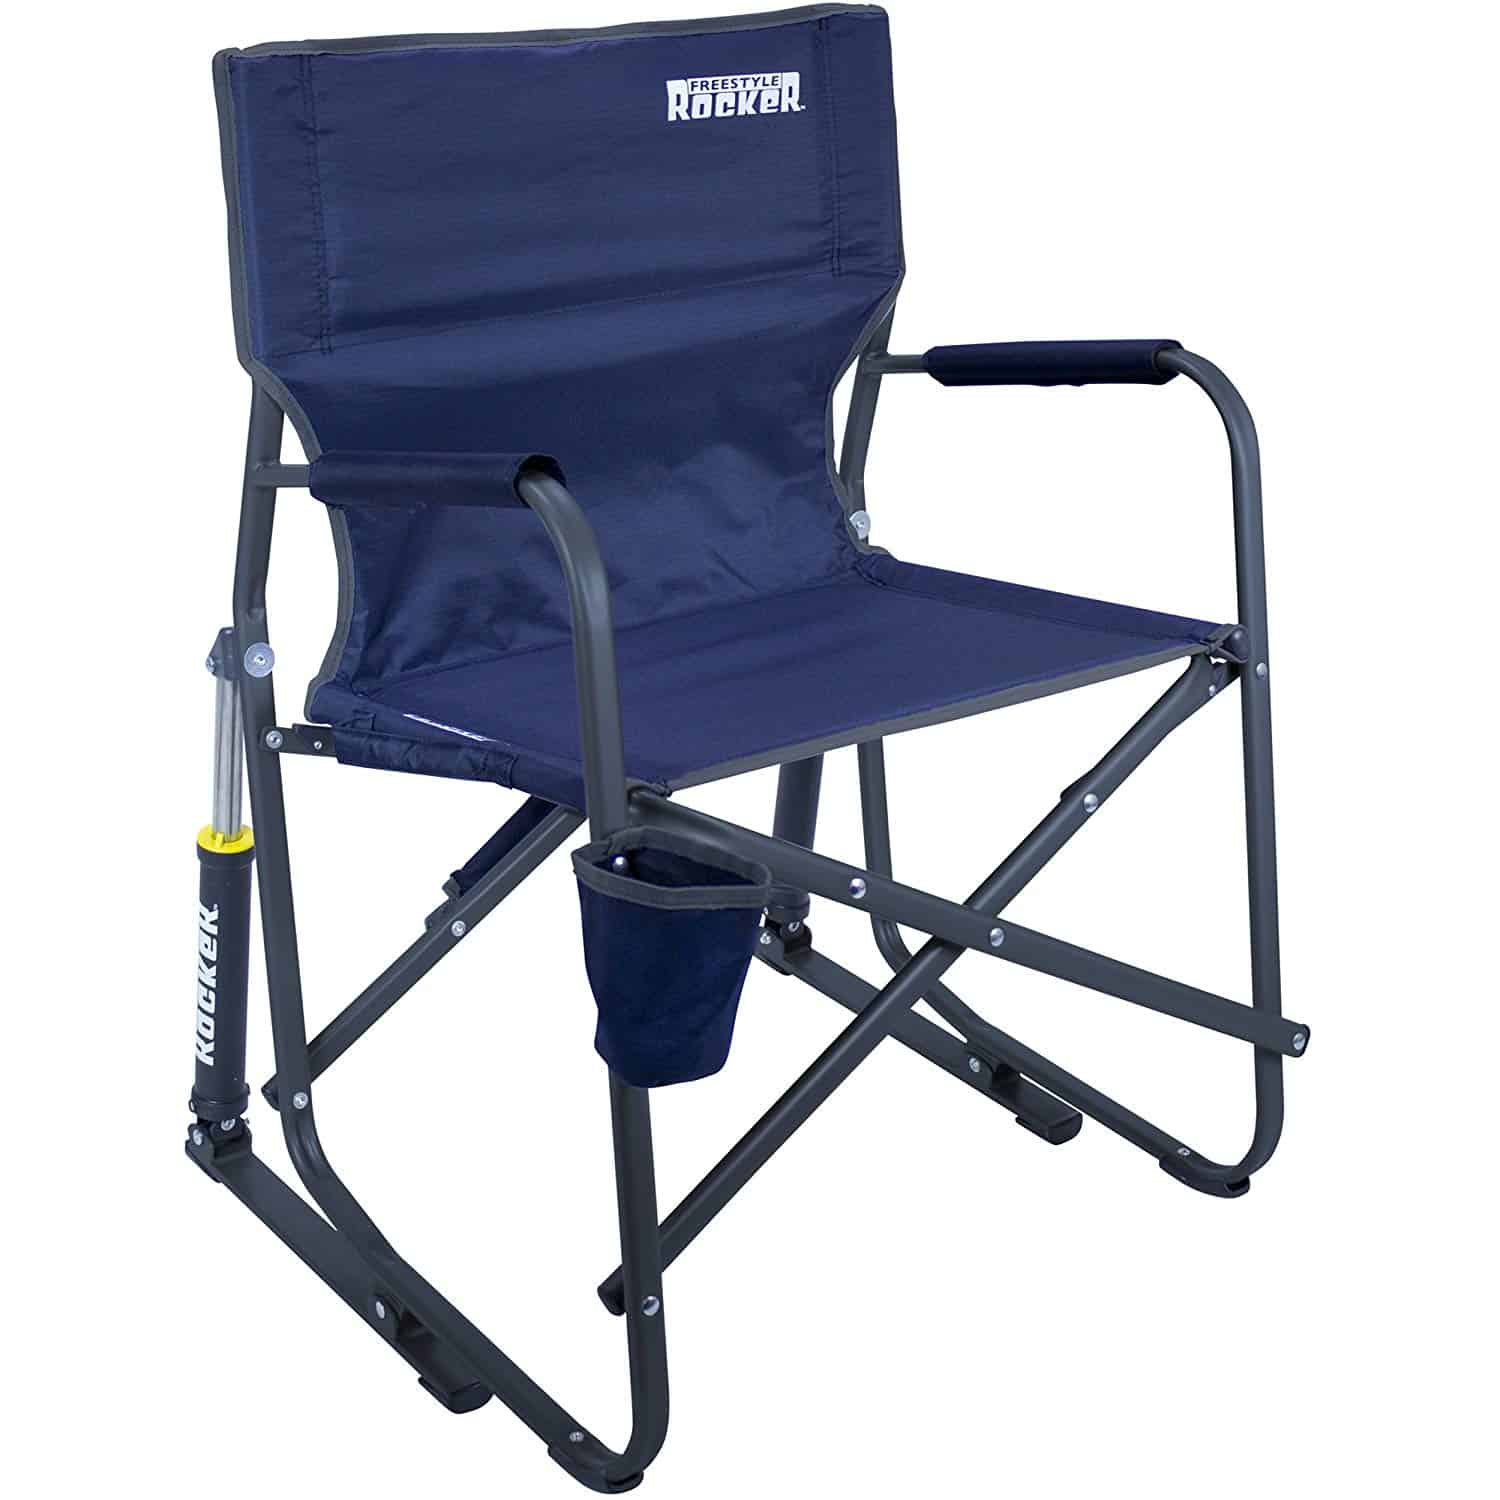 Most Comfortable Camping Chair 10 Best Camping Chairs Reviewed That Are Lightweight Portable 2019